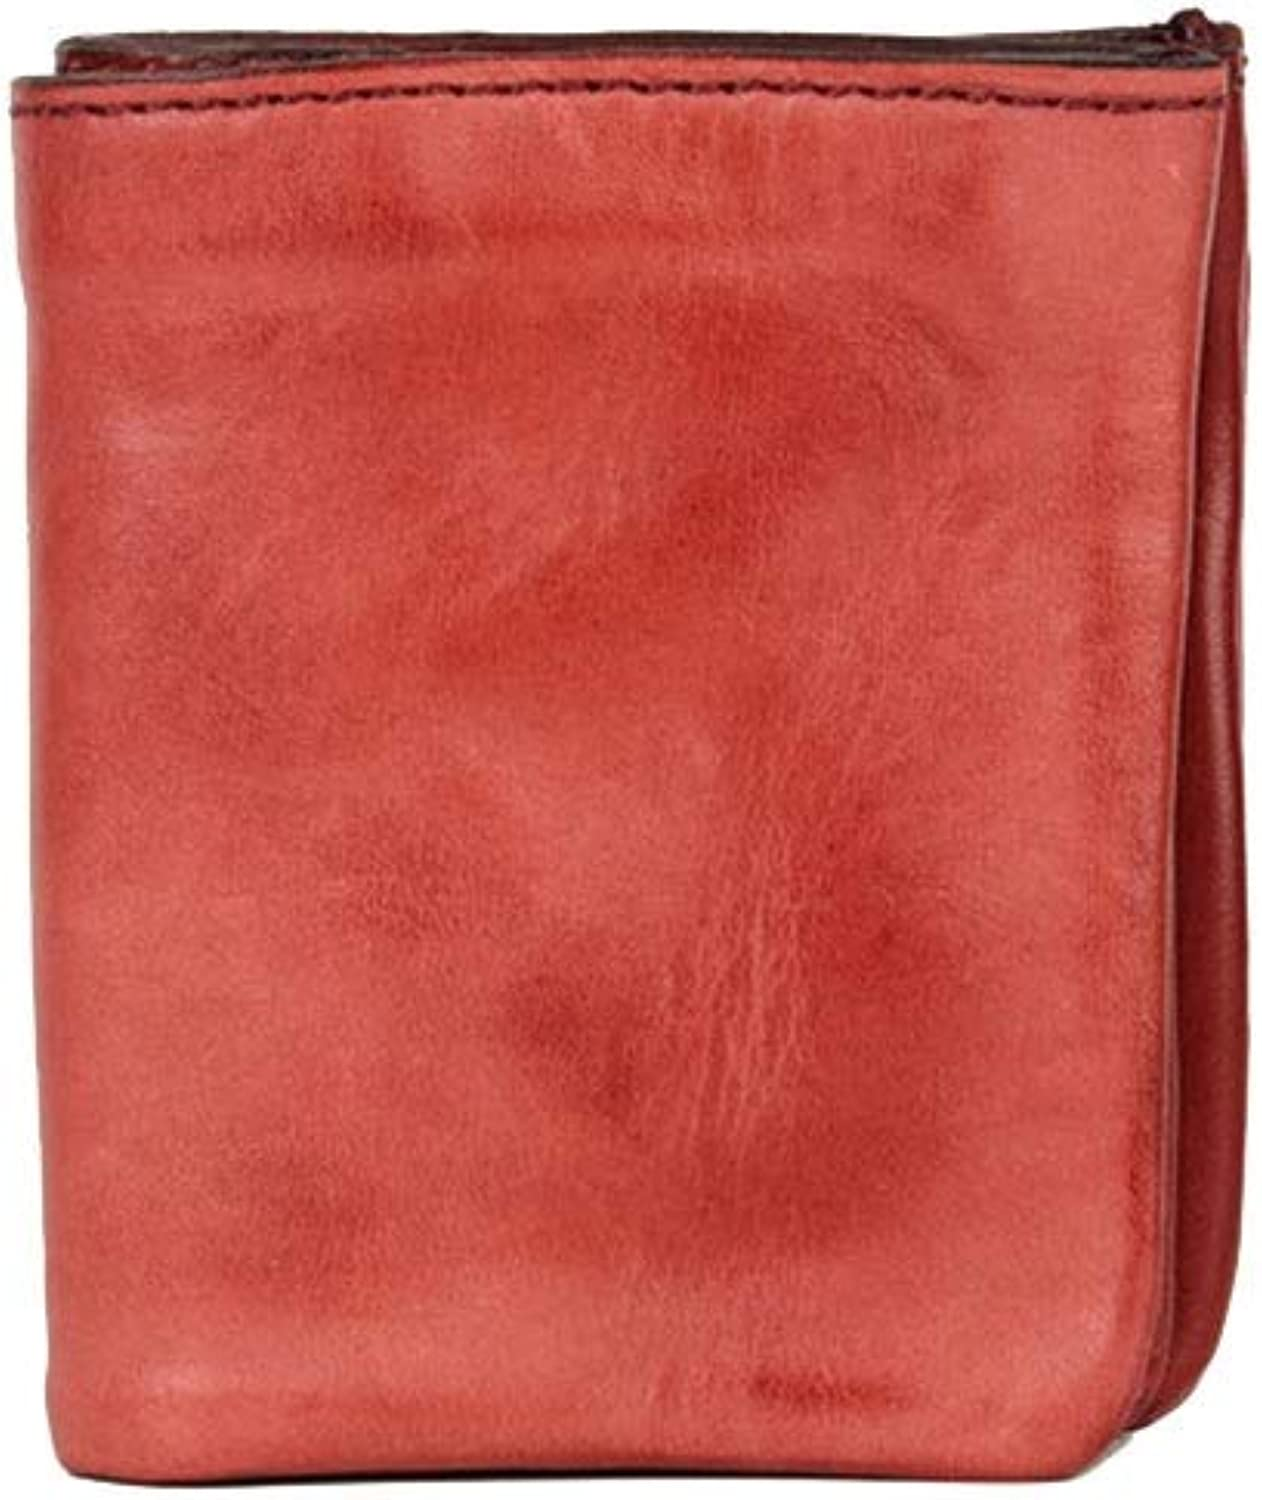 Women's Wallet Leather Short Ladies Wallet Vintage Men's Wallet Casual Soft Leather Neutral Handbag (color   Red)